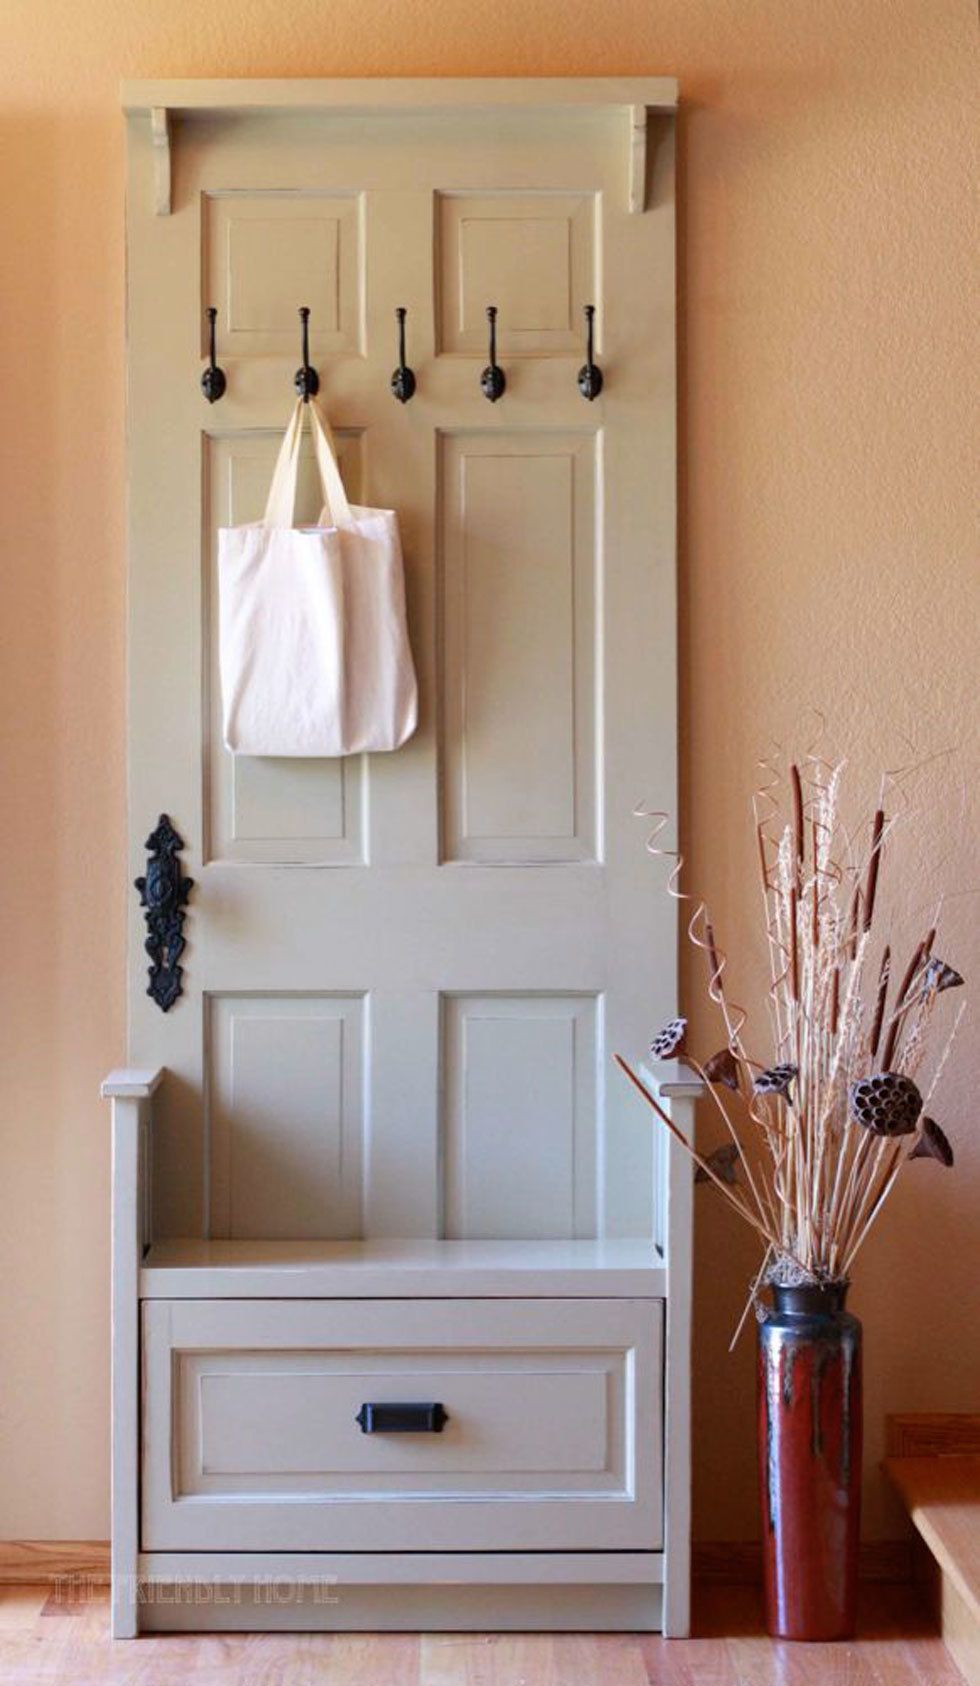 10 Ways to Reuse Old Doors in Your Home| Reuse Old Doors, Reuse Old Doors Ideas, Home Decor, Home Decor Ideas, Home Decor DIY,  Home Decor Ideas DIY